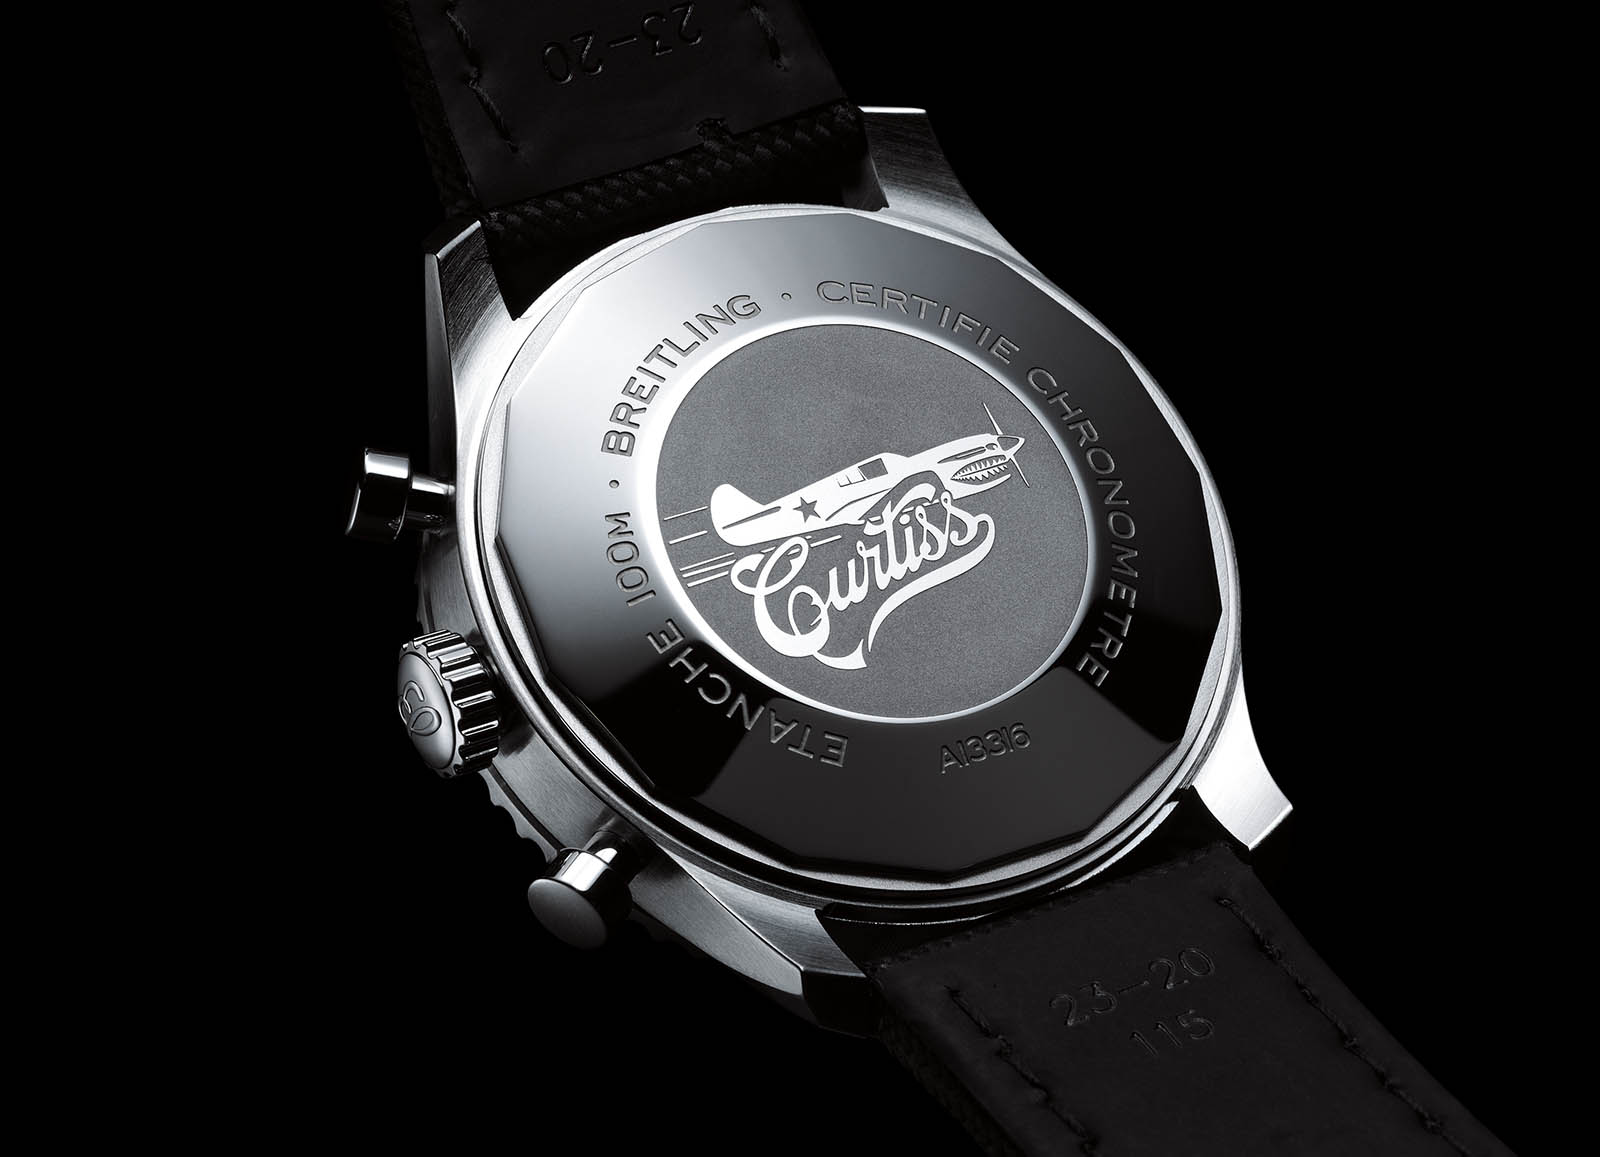 Caseback of the Aviator 8 Chronograph 43 Curtiss Warhawk